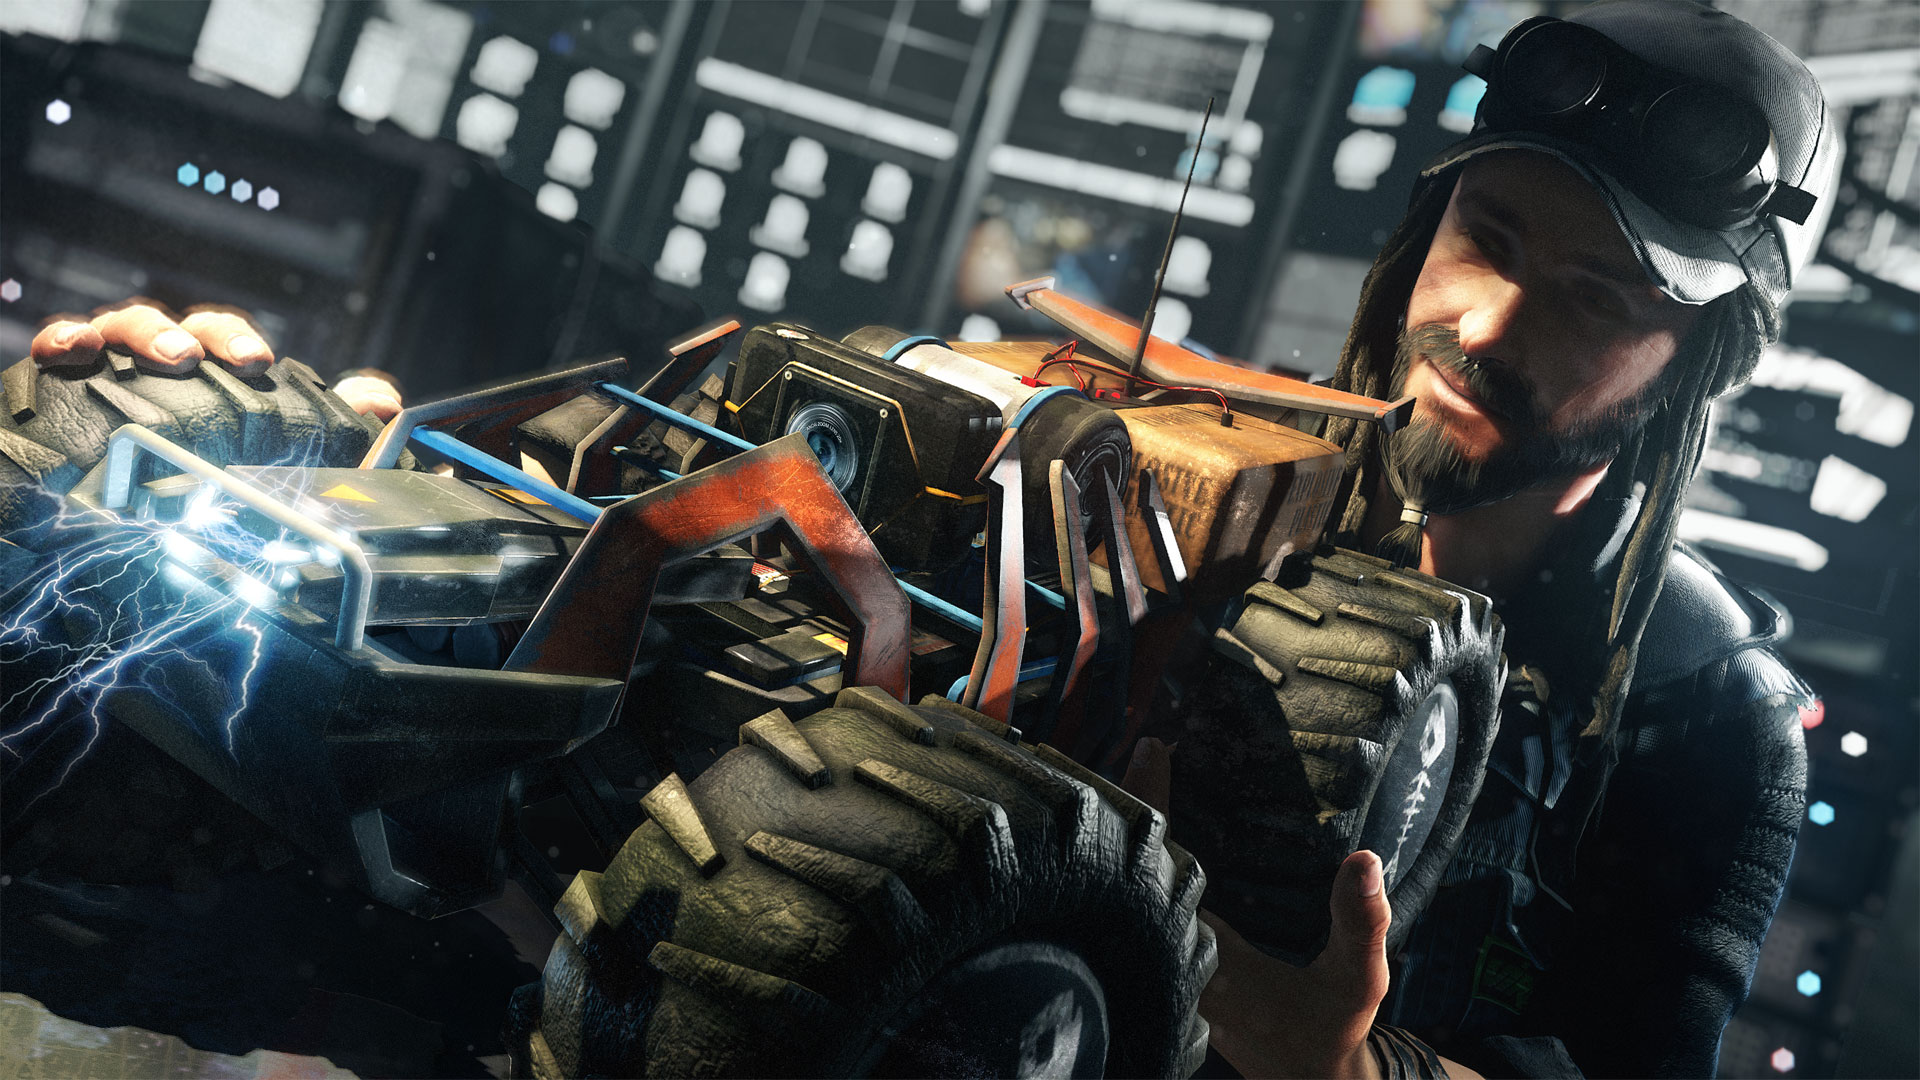 Bad Blood es el nuevo DLC de Watch Dogs, con T-Bone como protagonista.